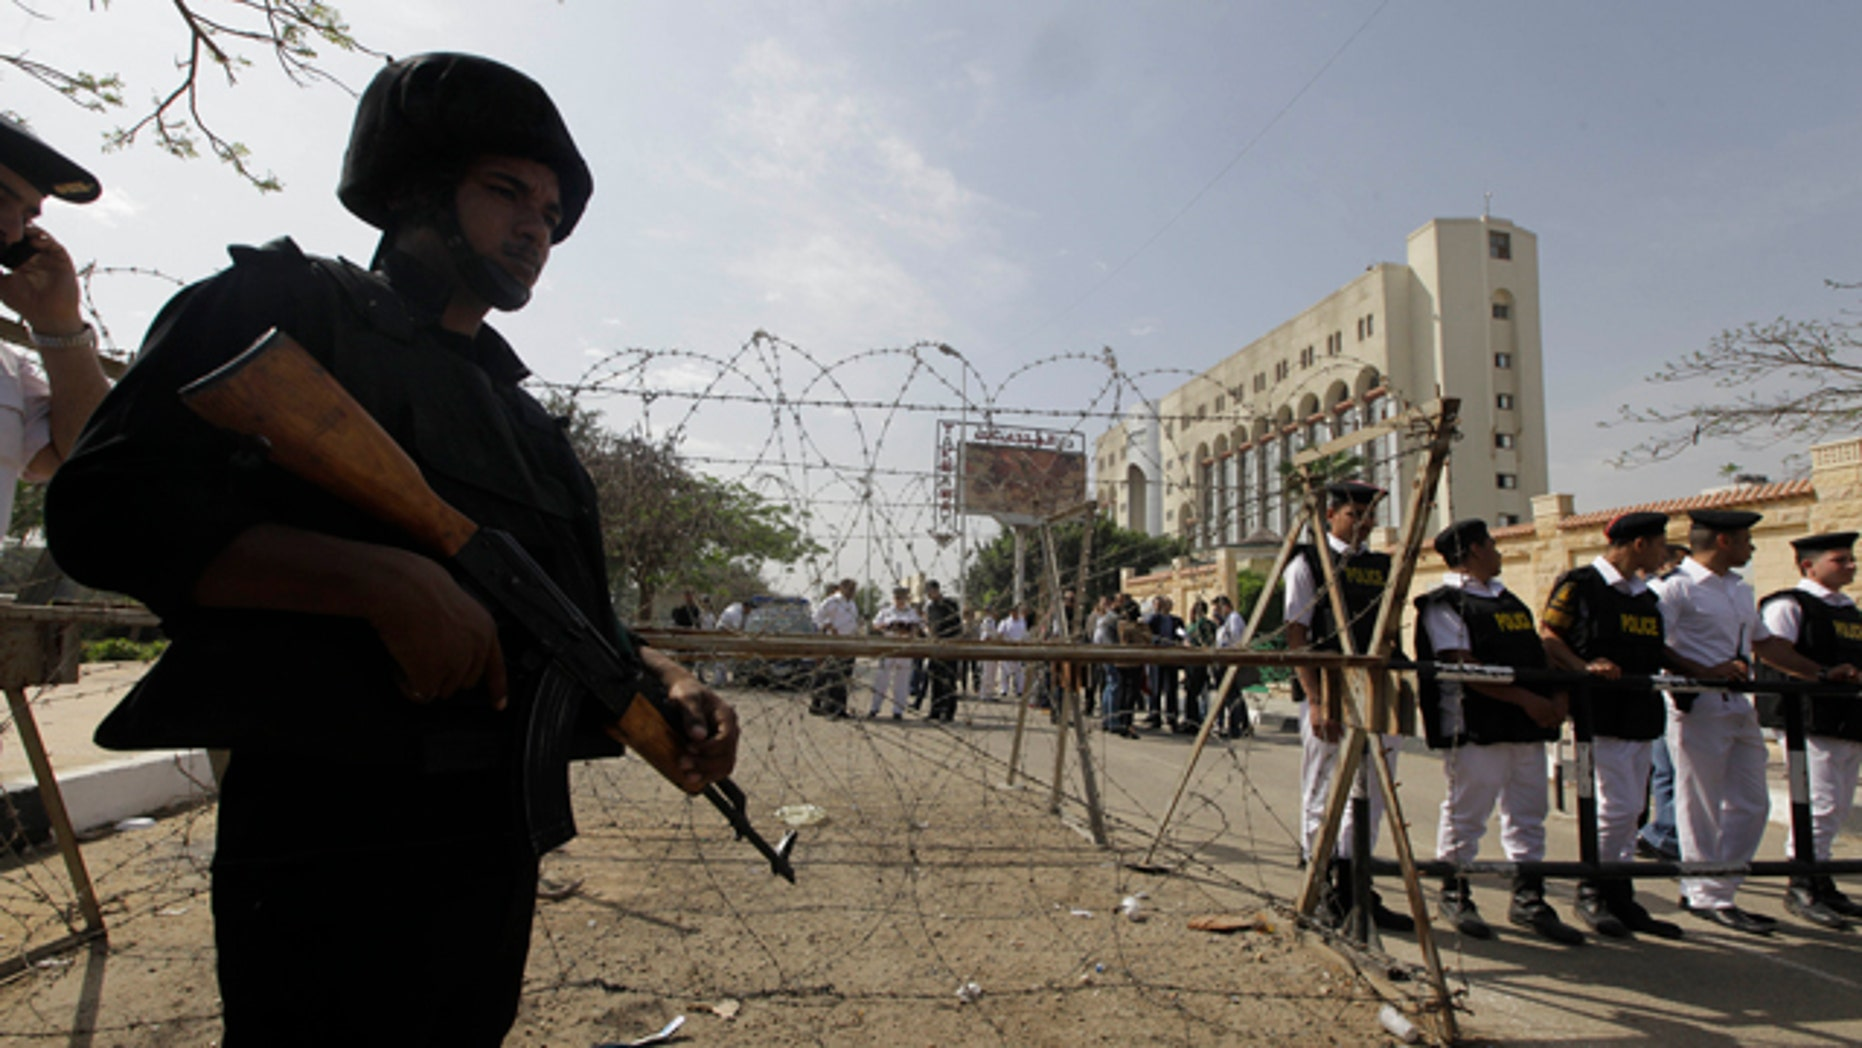 April 19, 2014: Egyptian soldiers stand guard outside the election commission office in Cairo. (AP Photo/Amr Nabil)